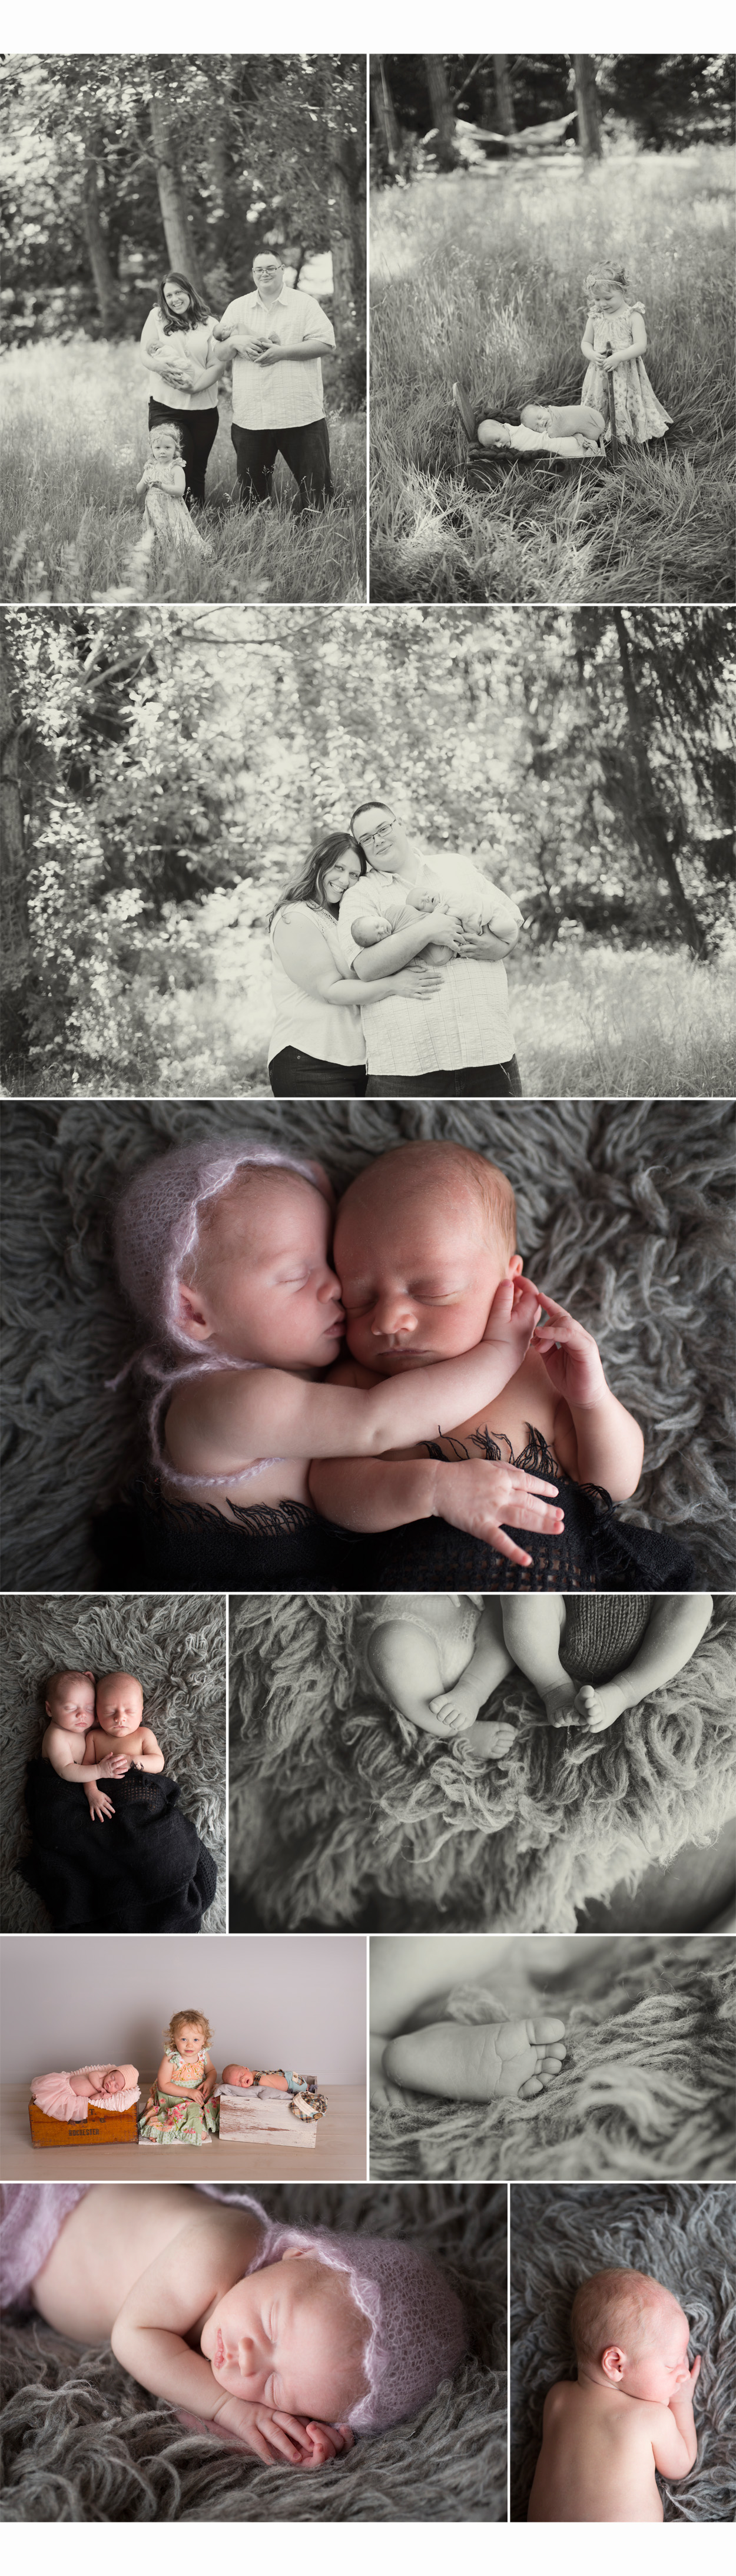 Let me kiss you boo boo | NorthGlow Photography